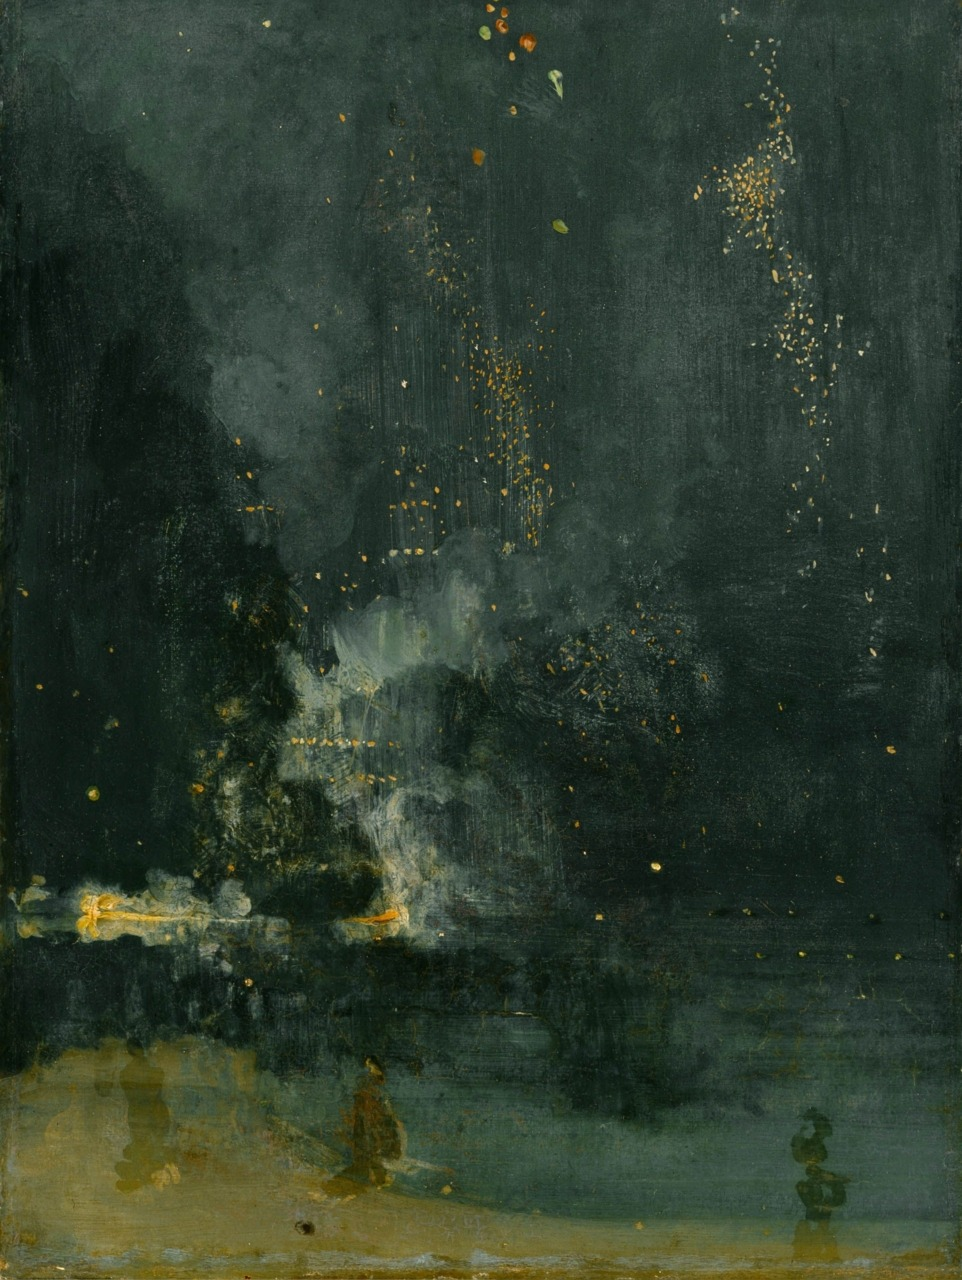 reigen:  James Abbot McNeill Whistler Nocturne In Black and Gold, the Falling Rocket (1875) Oil on panel, 23¾ x 18½ inch Detroit Institute of Arts J.